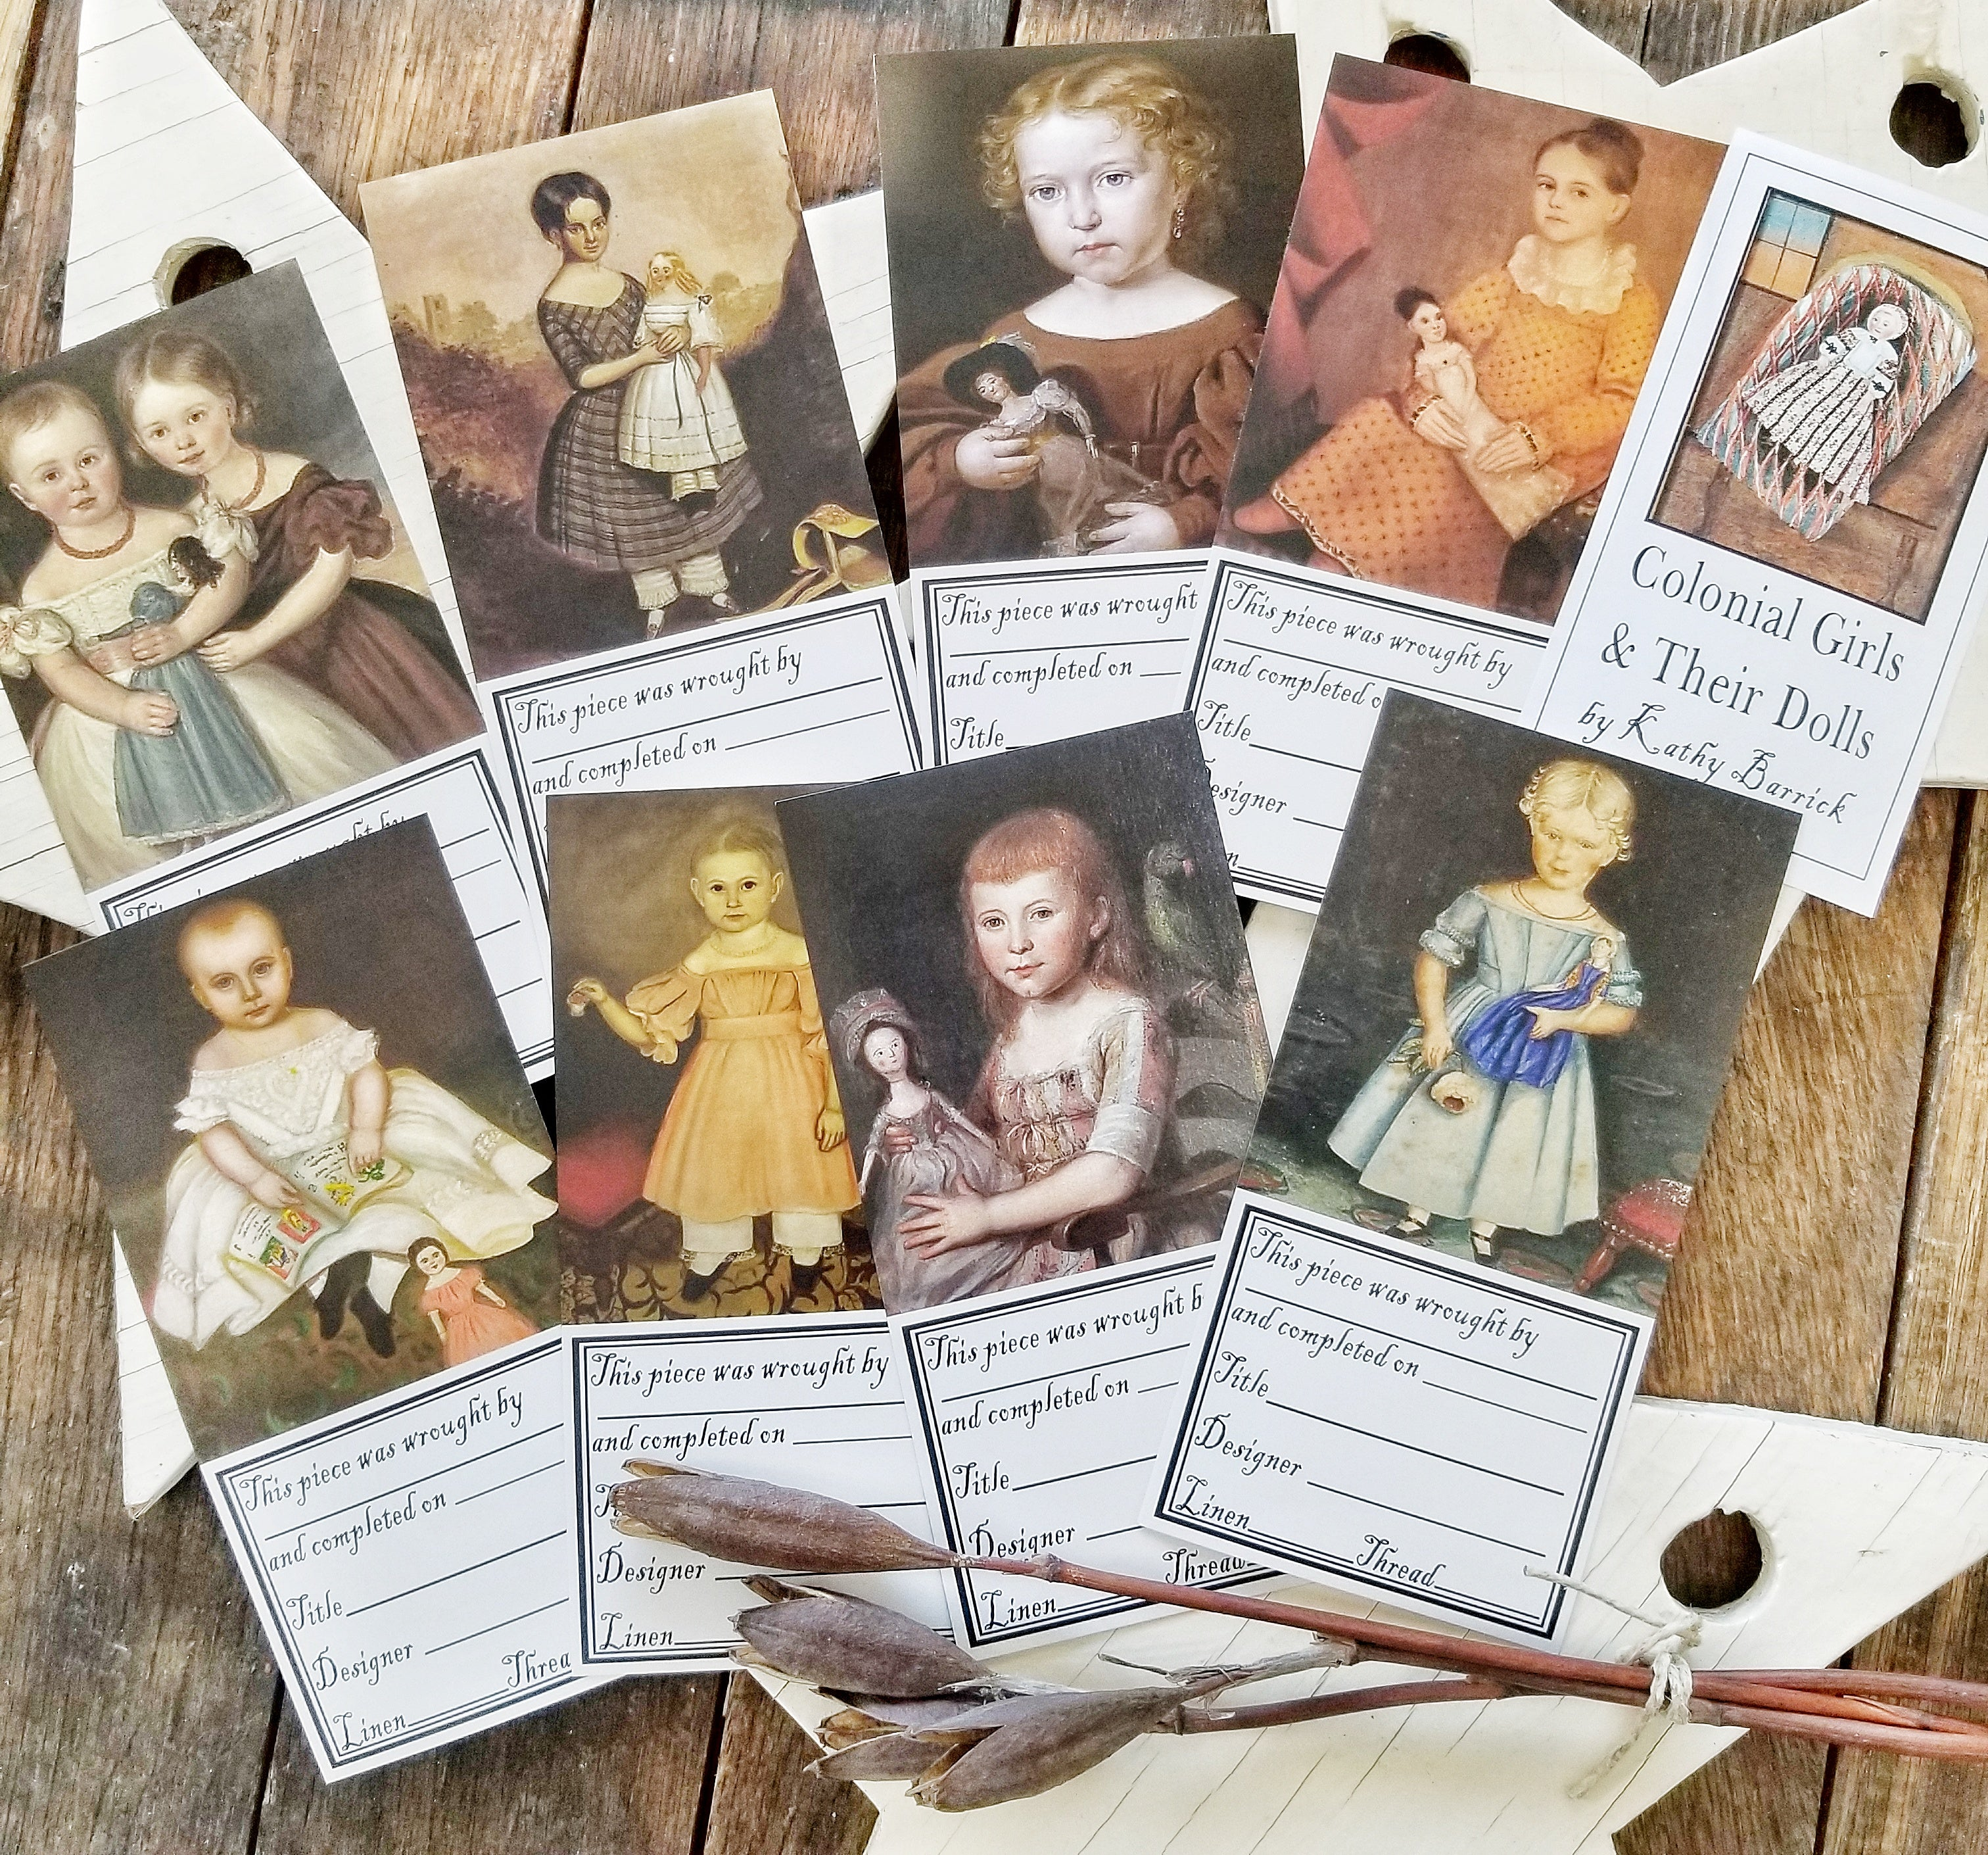 Colonial Girls & Their Dolls Labels - 2021 Expo Pre-Order